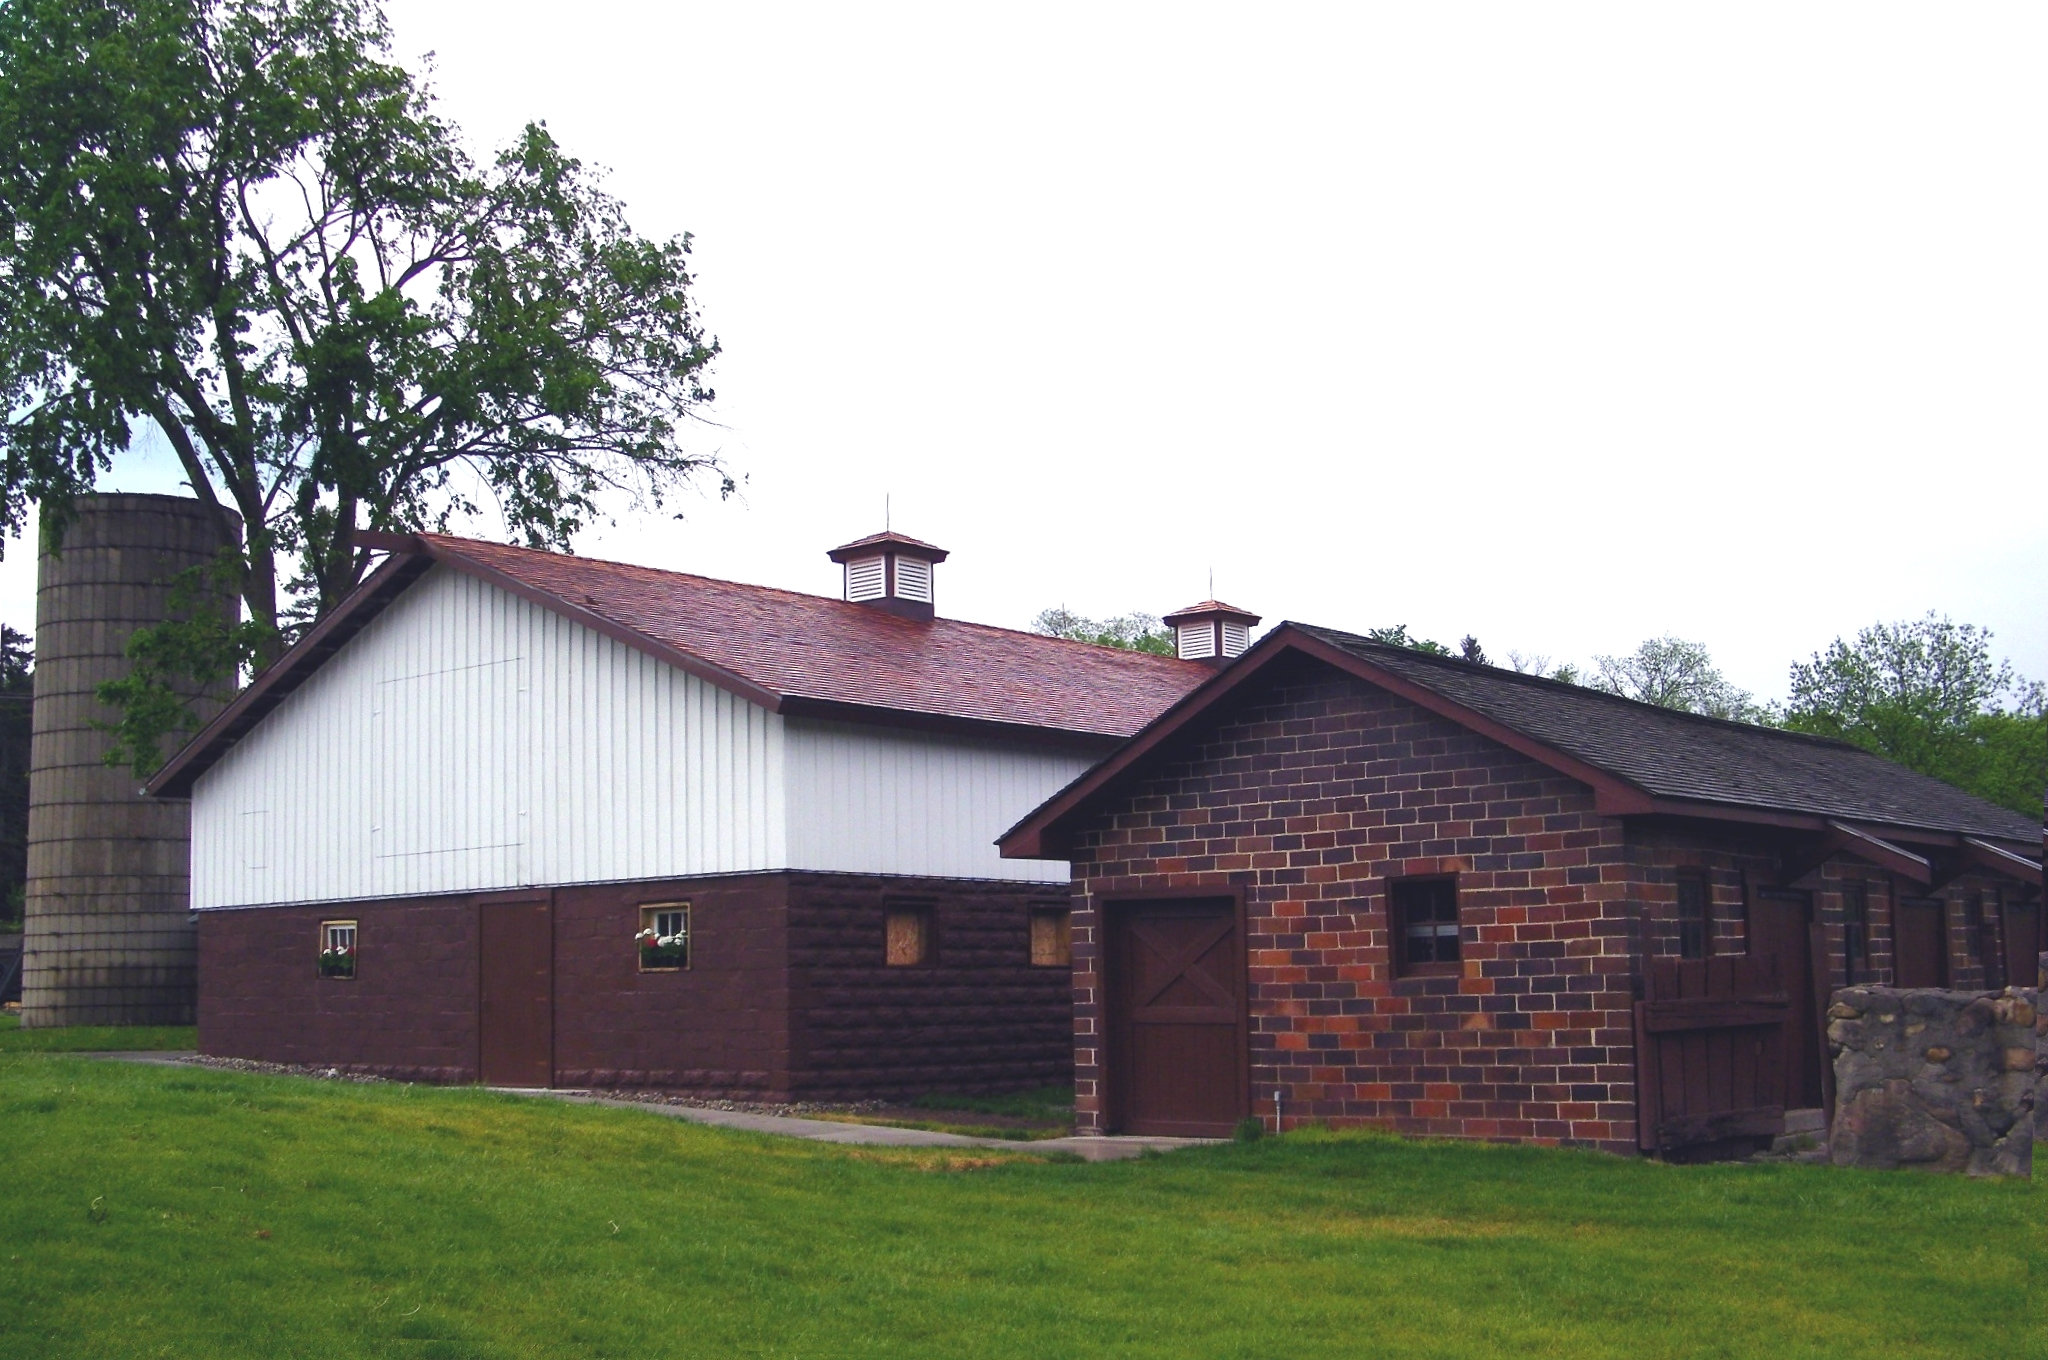 The Calf Barn restored, re-purposed and placed back in context in the Farm.